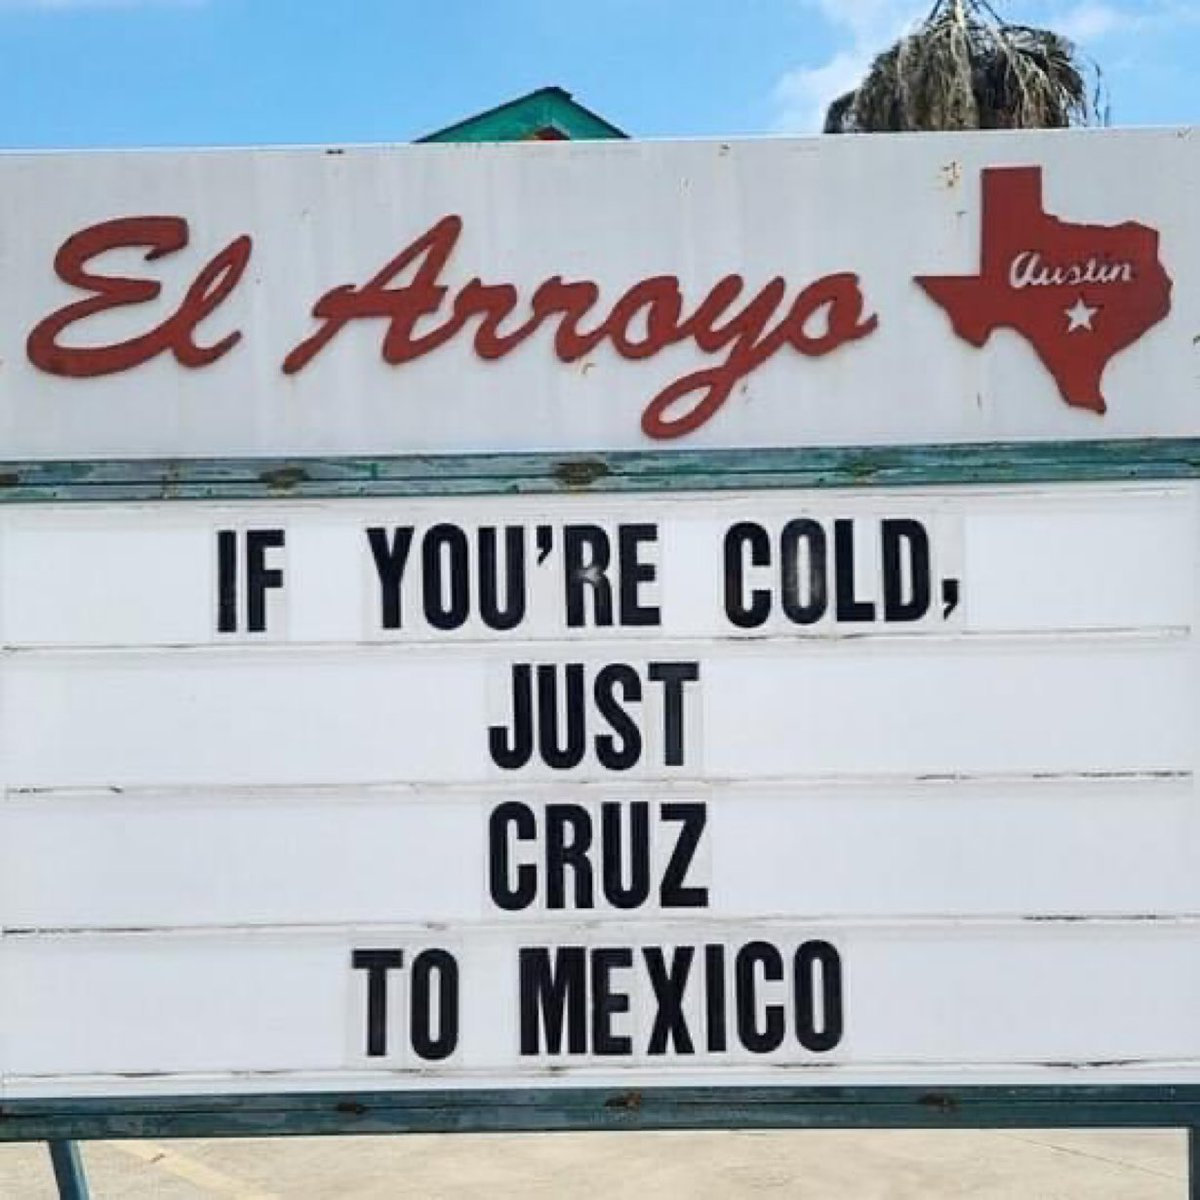 @SenTedCruz Nice to show up AFTER the snow melted. I will leave this here. #TedCruzFliesToCancunWhileHoustonFreezes  #TedCruzisADisgrace https://t.co/8yjVQCE7cr